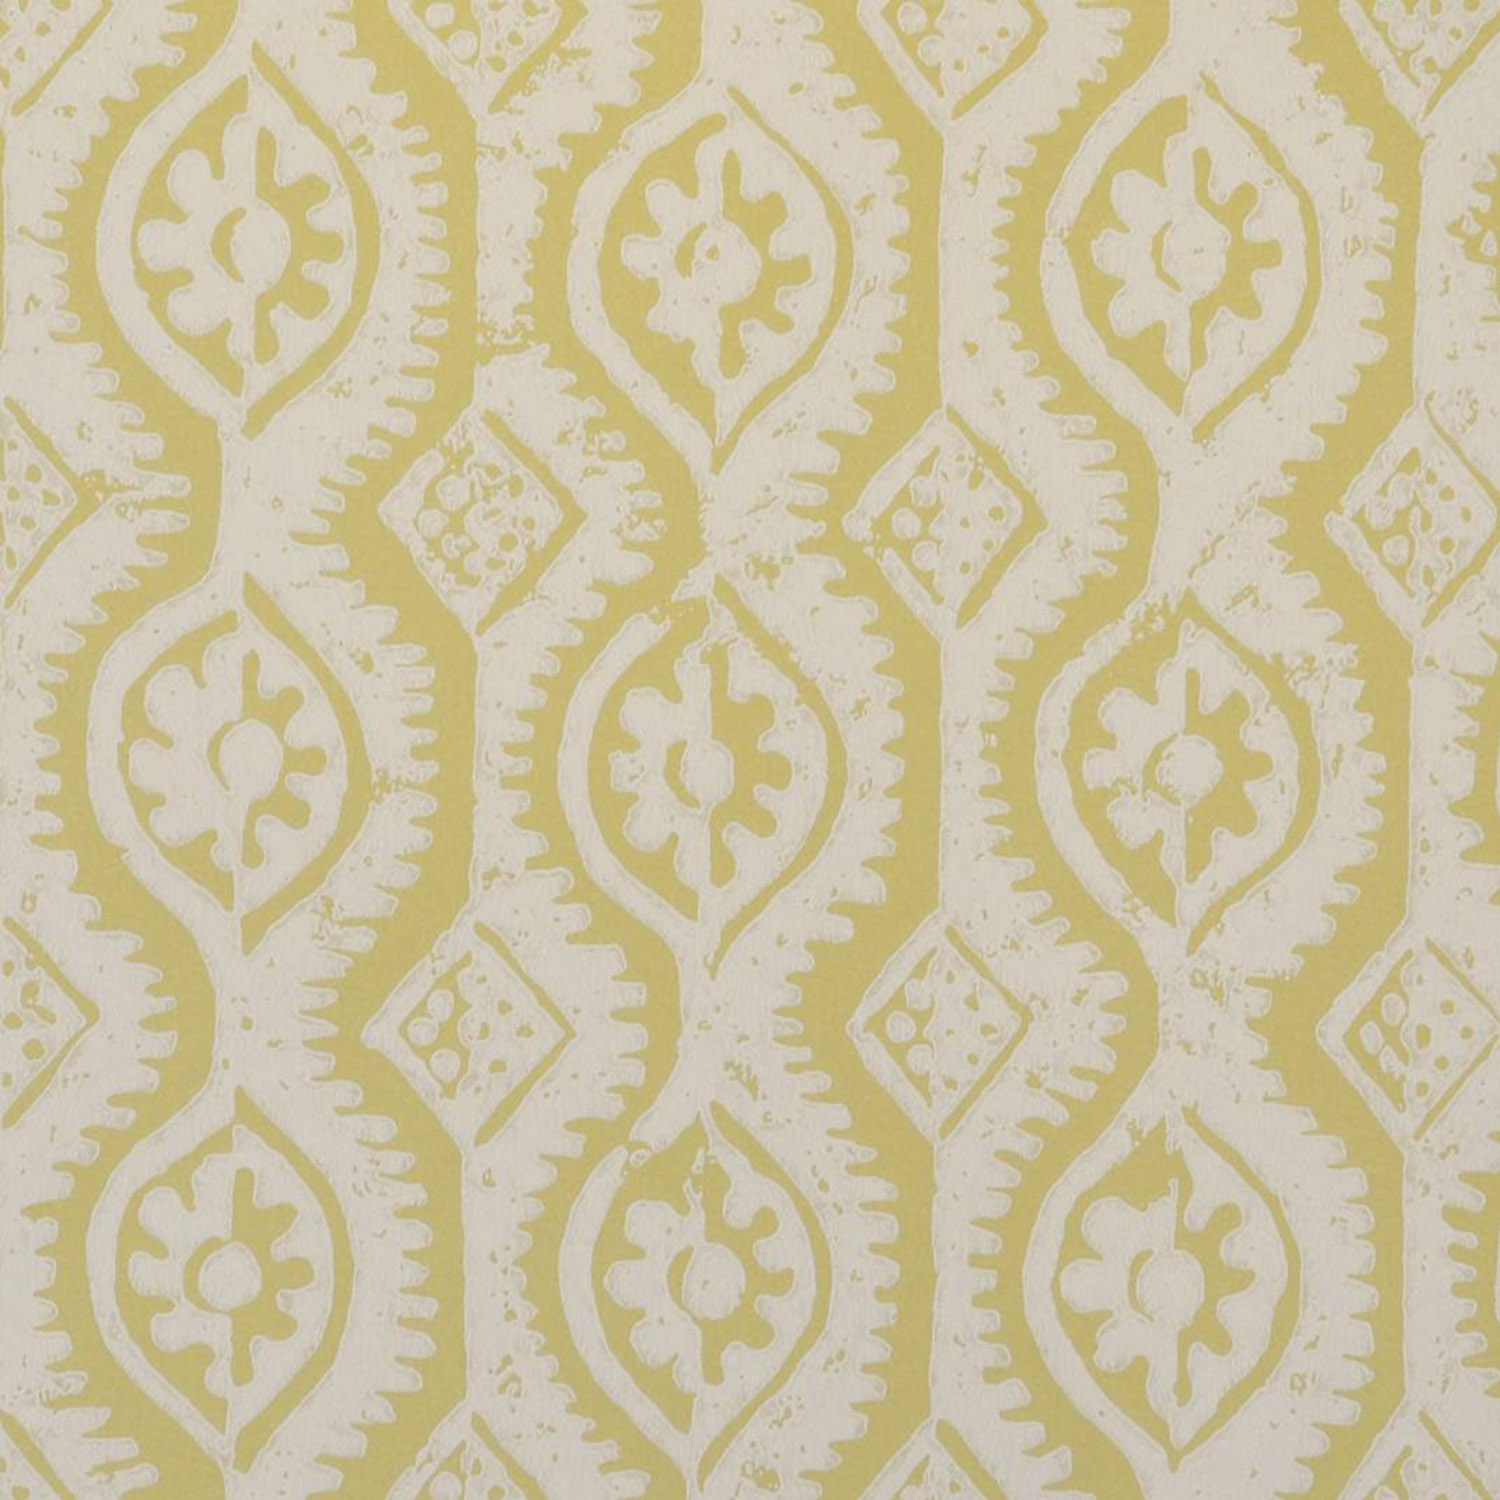 <p><strong>SMALL DAMASK</strong>yellow 880-03<a href=/the-peggy-angus-collection/small-damask-yellow-880-03>More →</a></p>